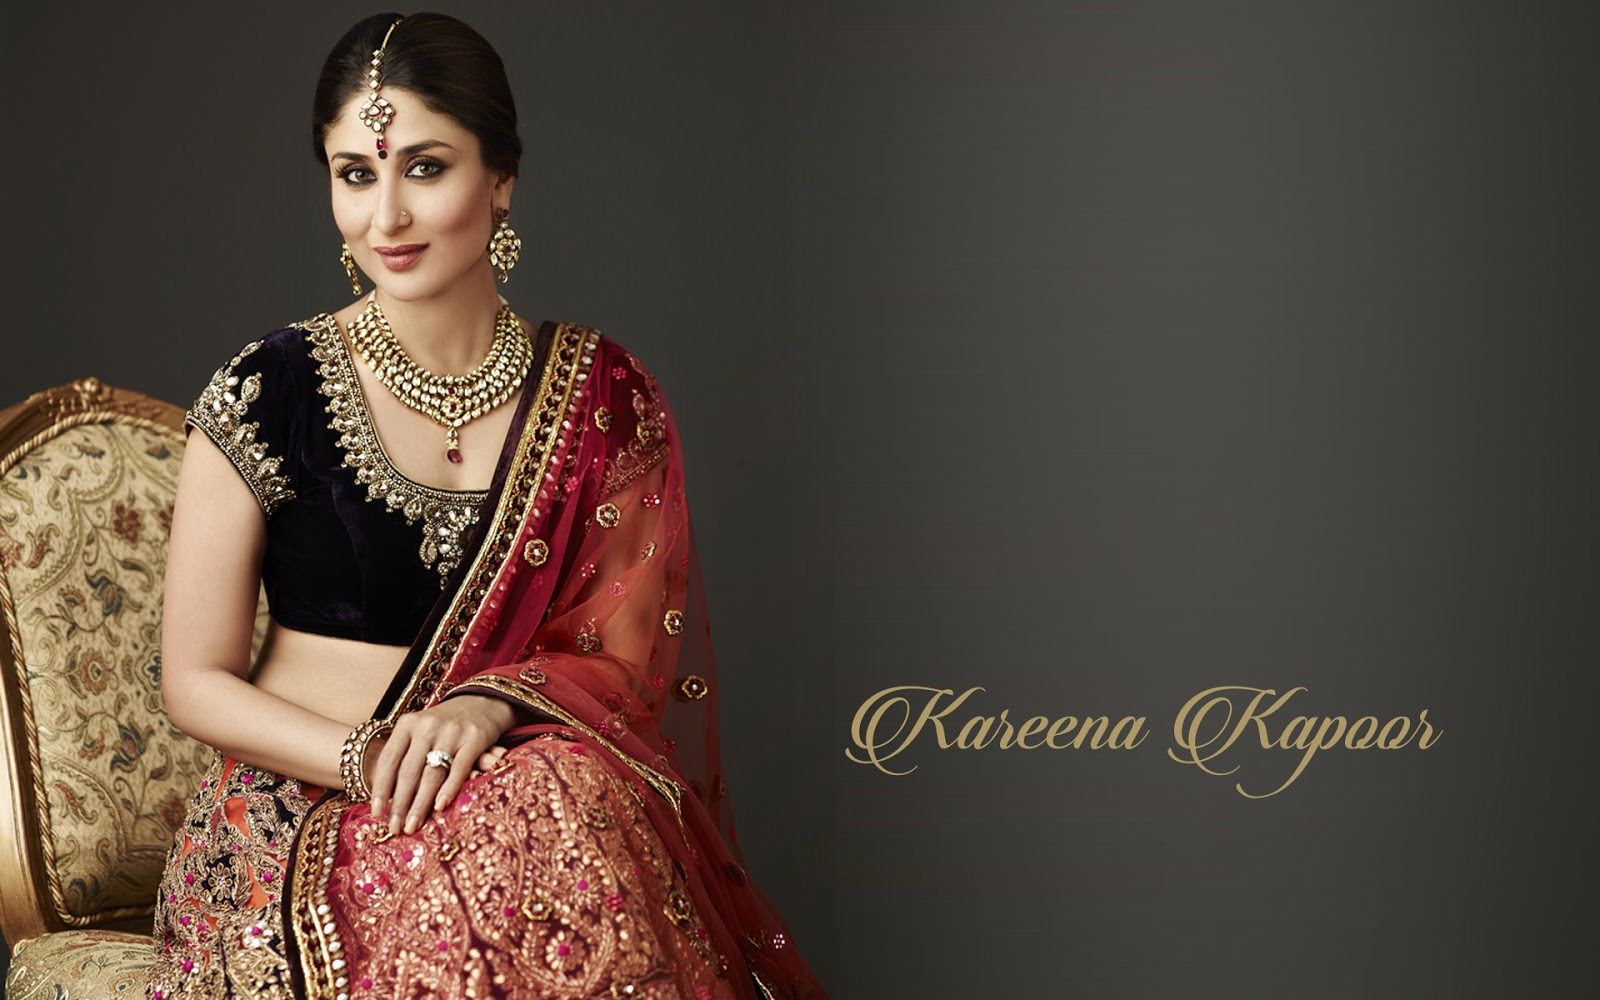 kareena kapoor traditional look hd images